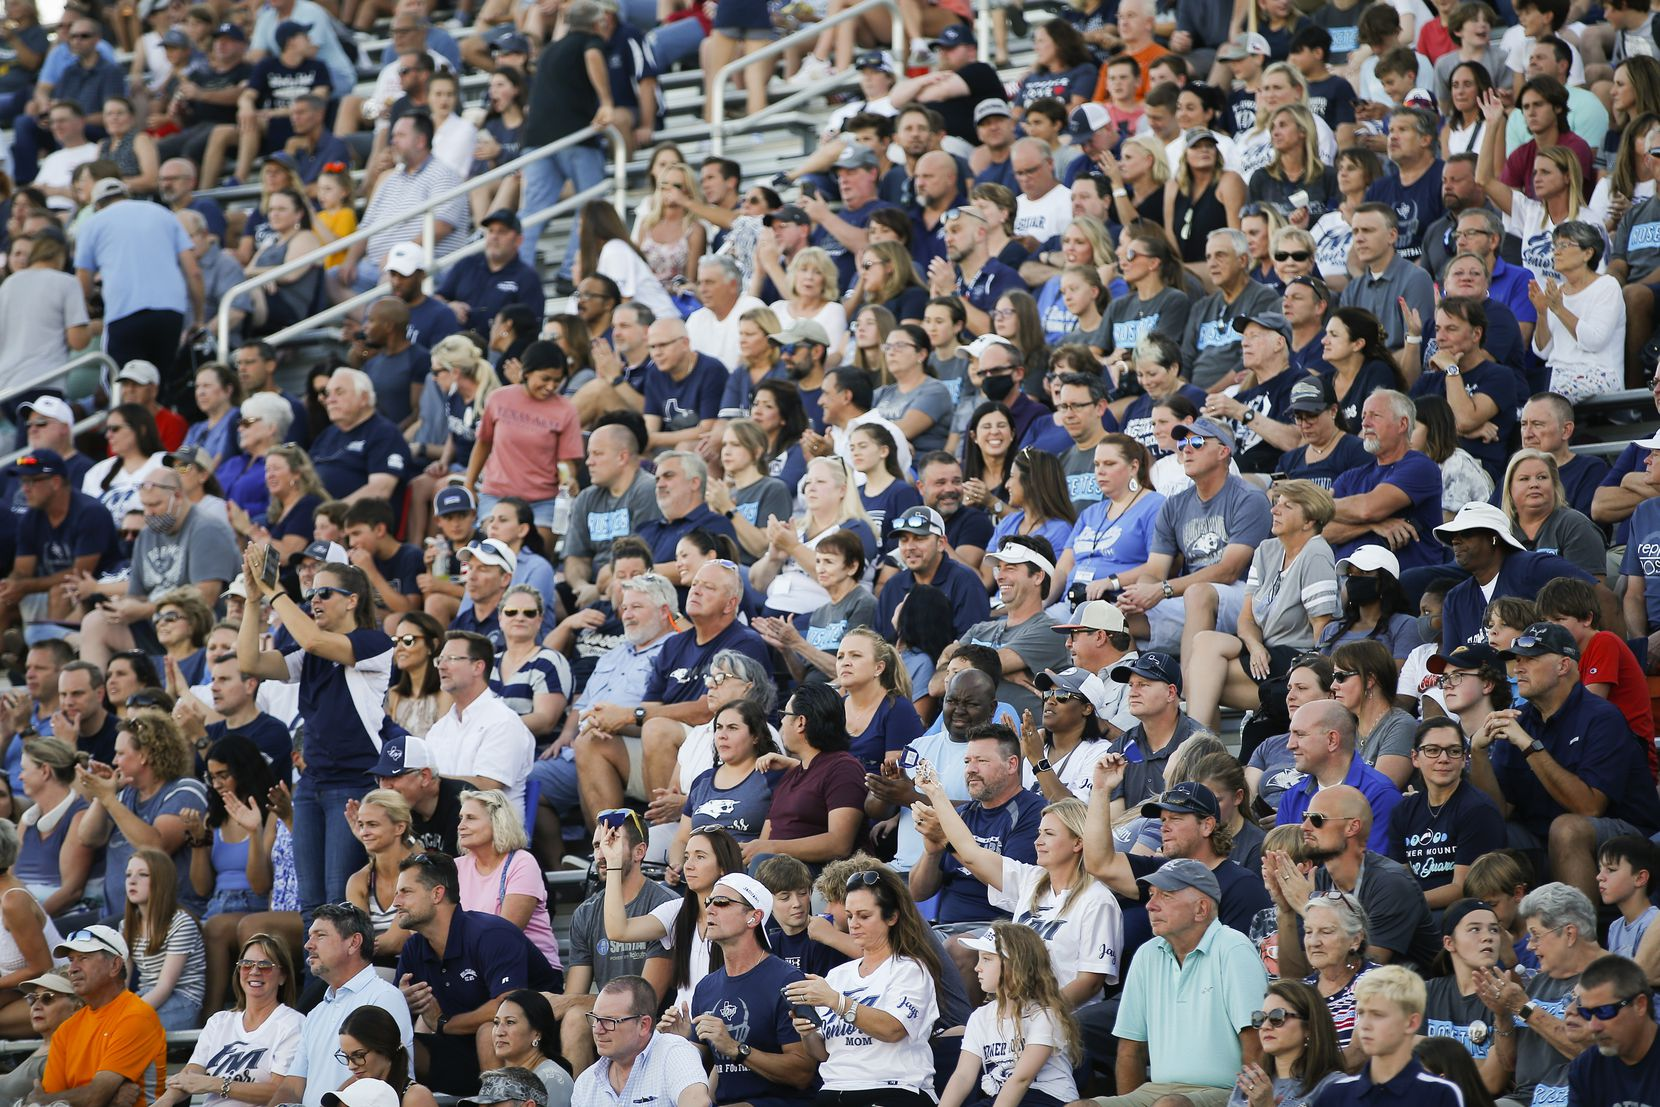 Flower Mound football fans cheer  during the first half of a high school football game at Flower Mound High School, Friday, August 27, 2021. (Brandon Wade/Special Contributor)